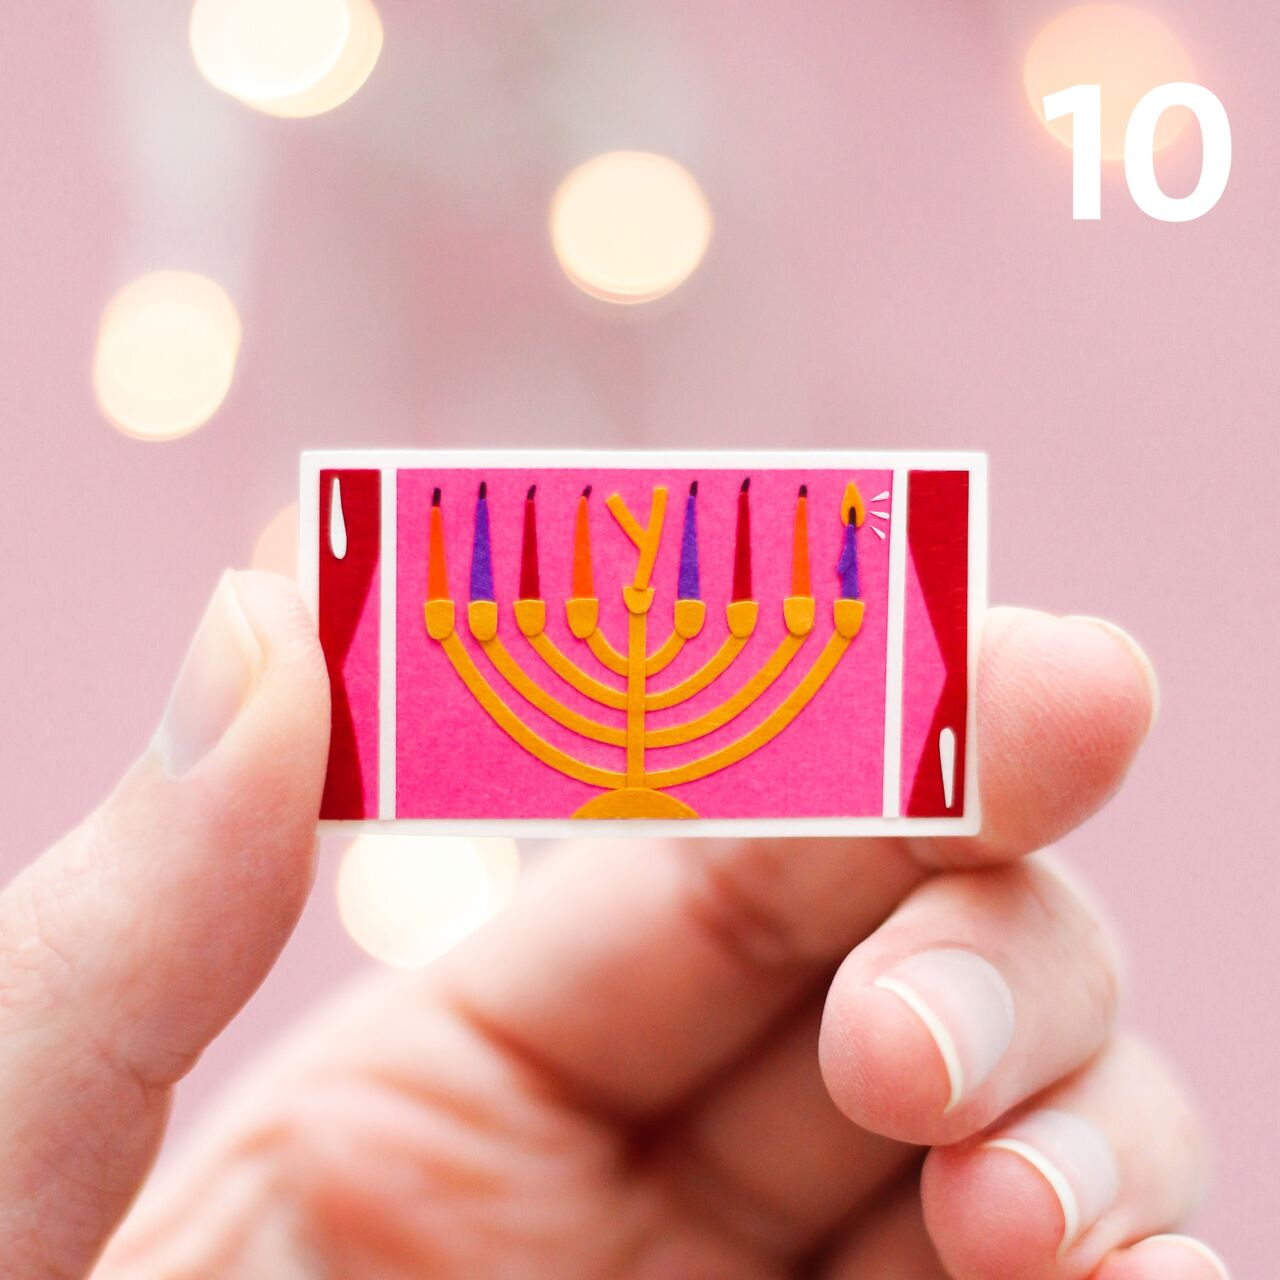 Fingers holding a tiny paper cut out illustration of a window. A menorah sits in the window.